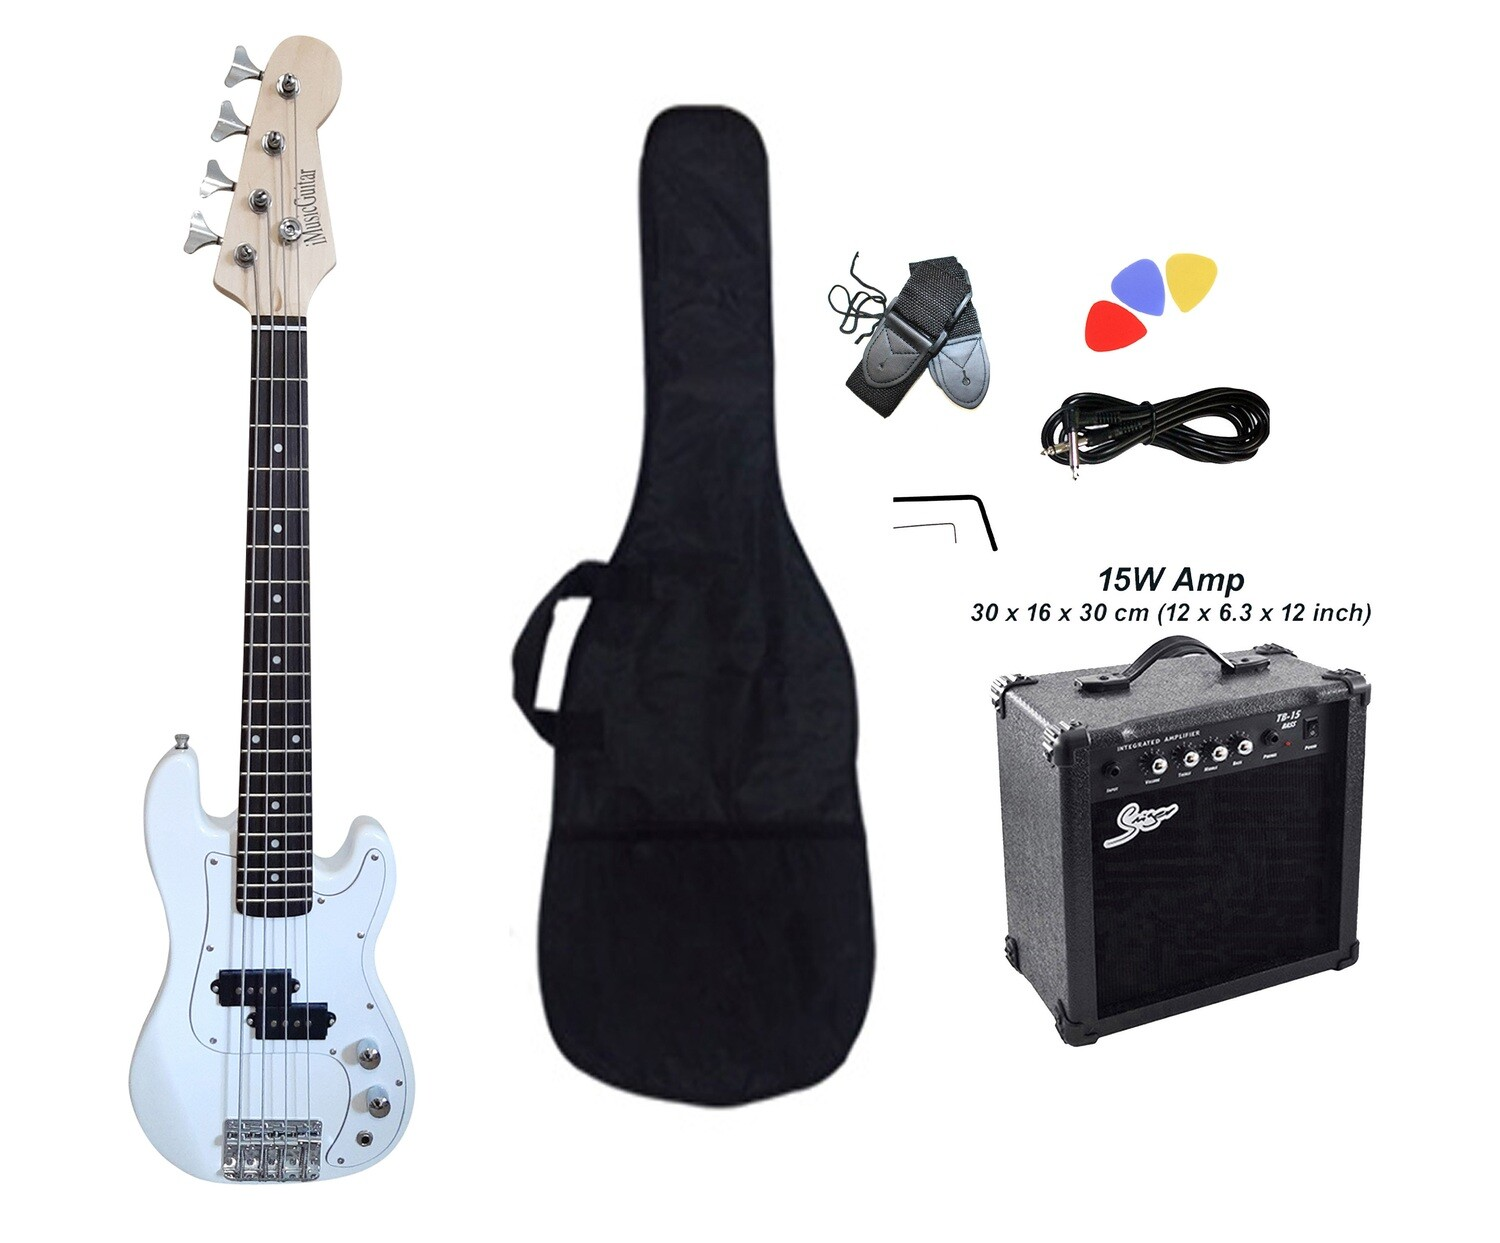 Mini Bass Guitar for Kids 36 inch White with Amp Pack PB566PK